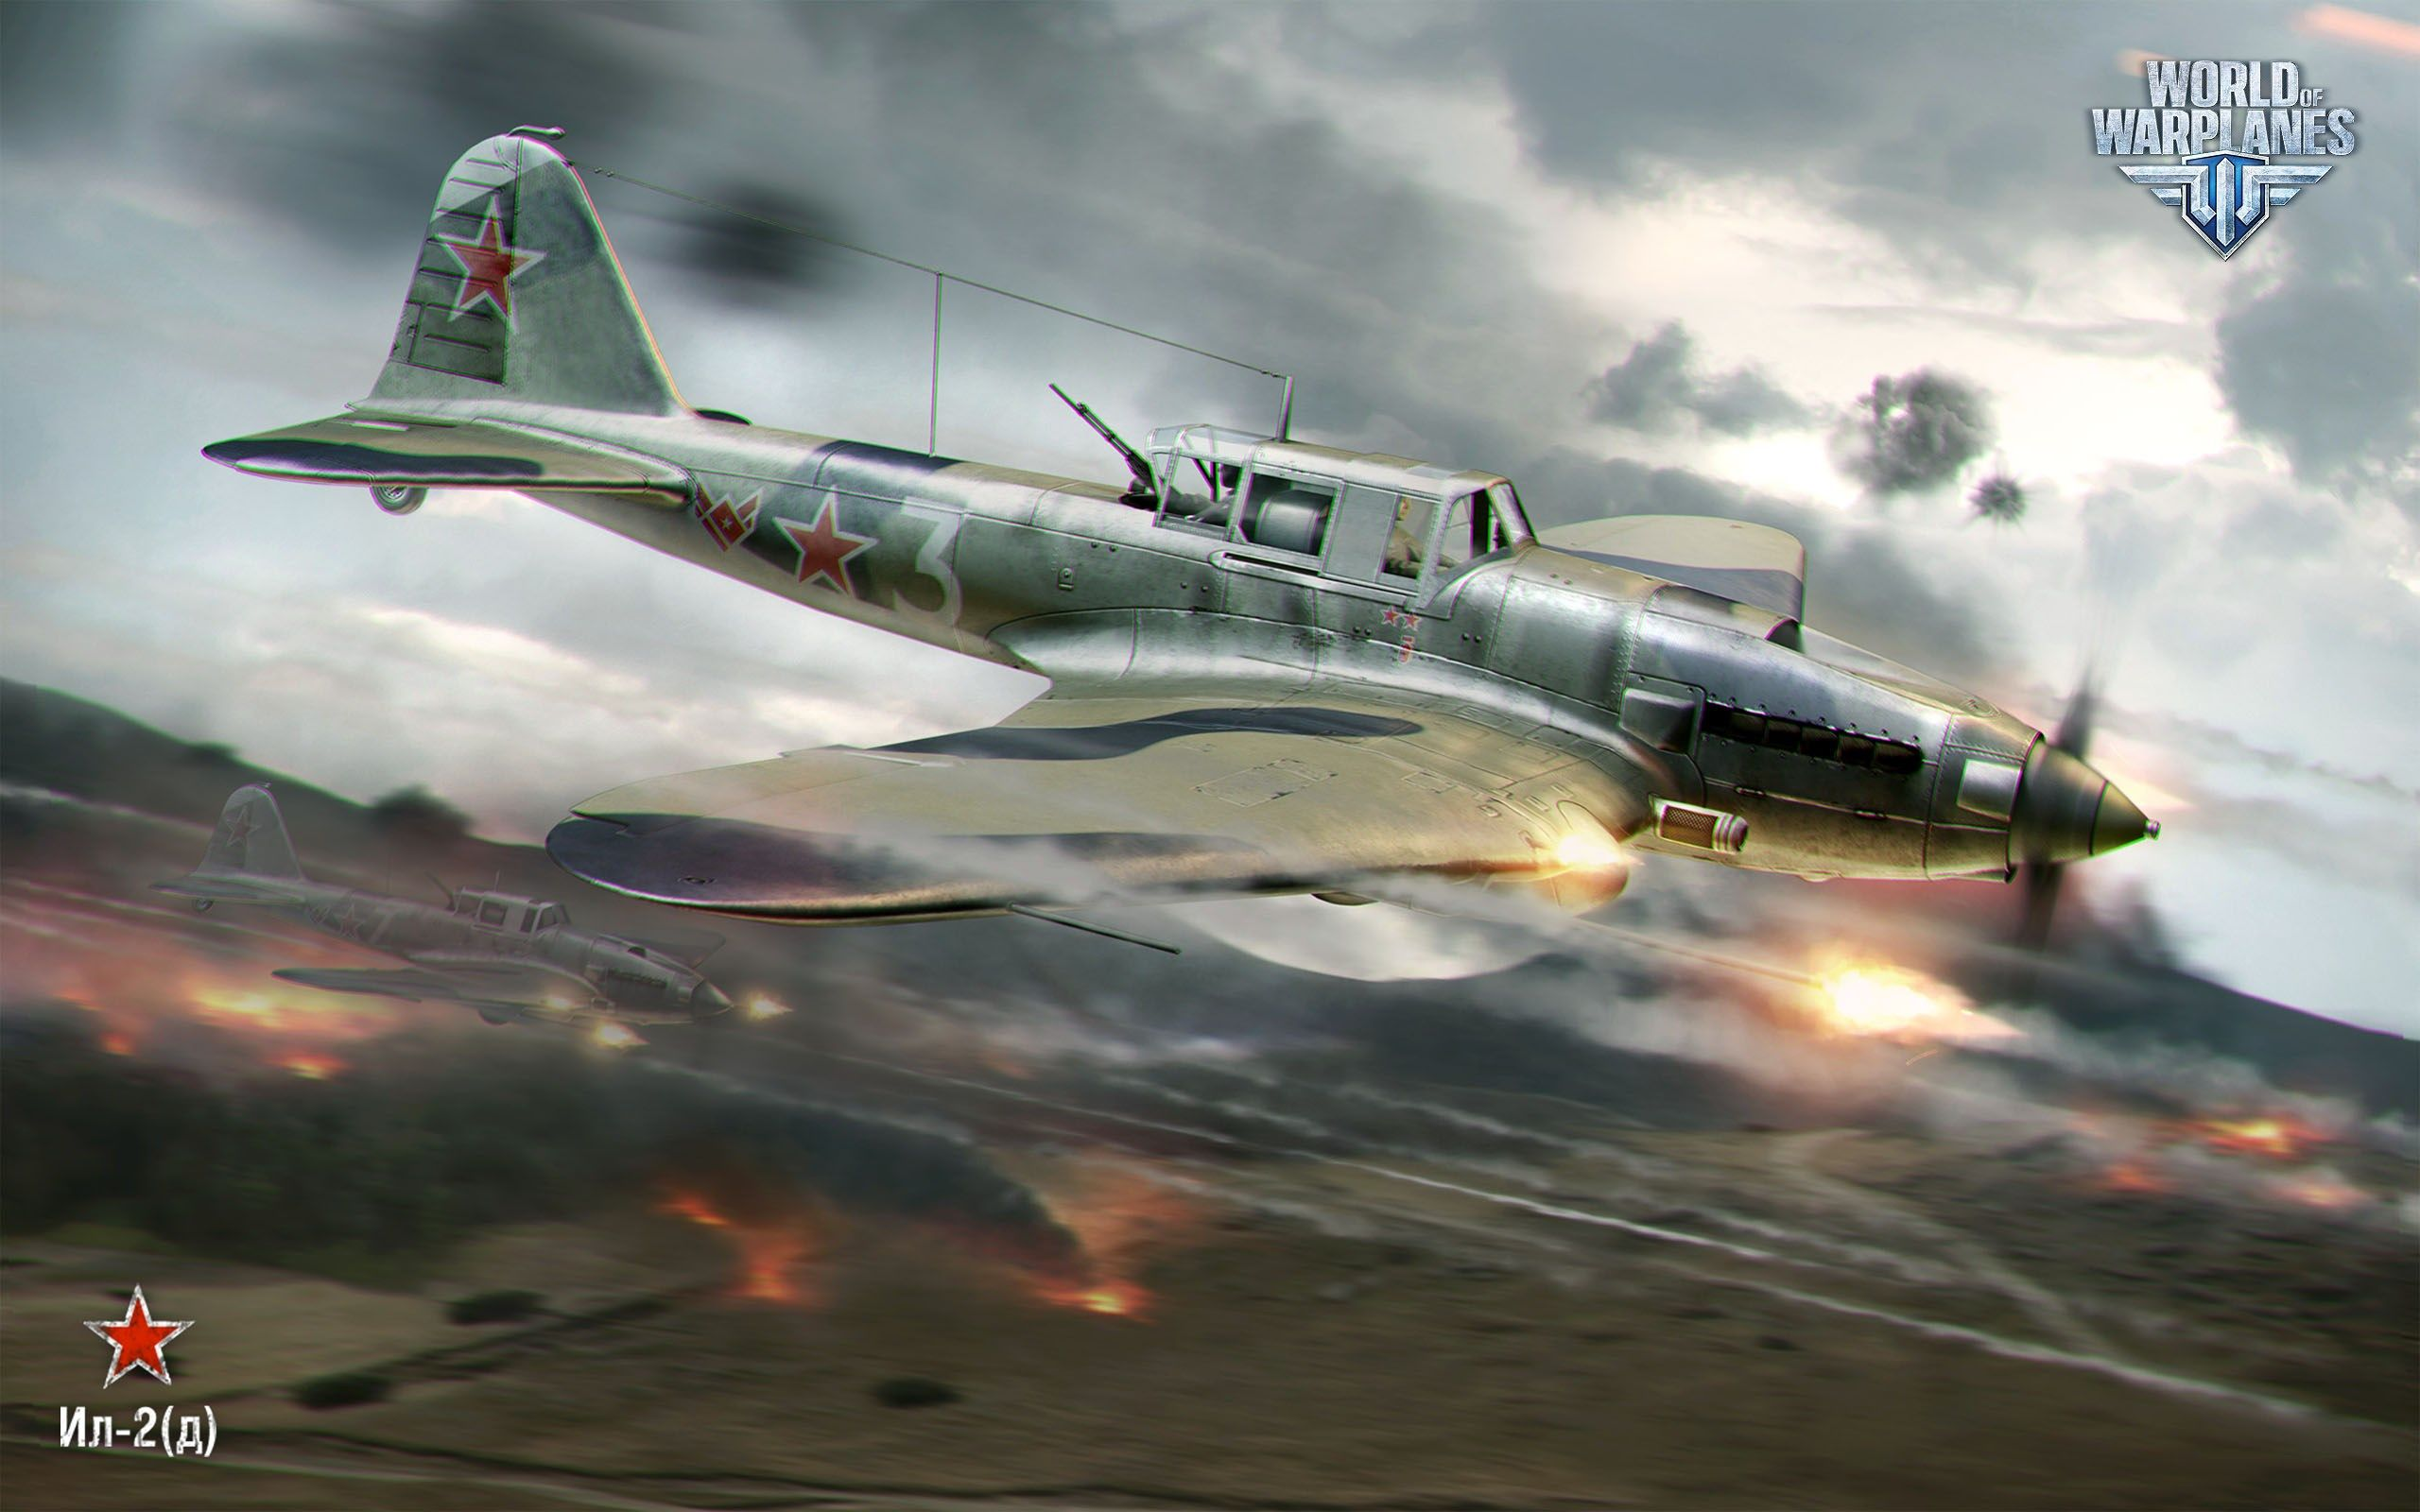 #1300351, World of Warplanes category - pictures of World of Warplanes